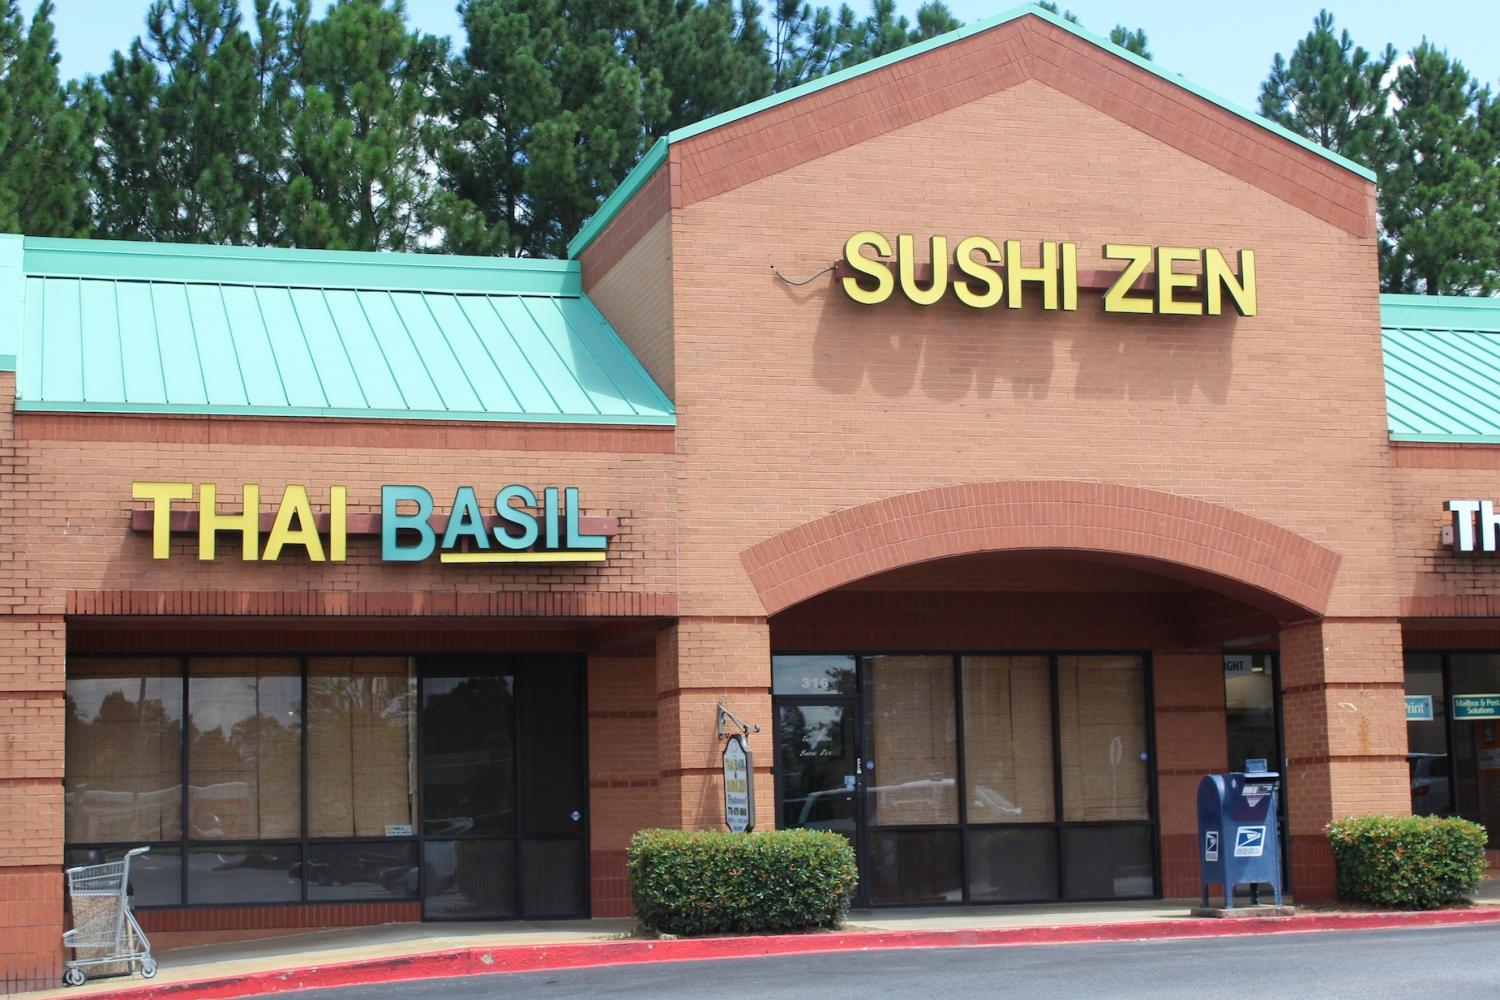 Thai Basil and Sushi Zen, located in the Kennesaw/Acworth area, proves itself as one of the most popular places for sushi lovers.